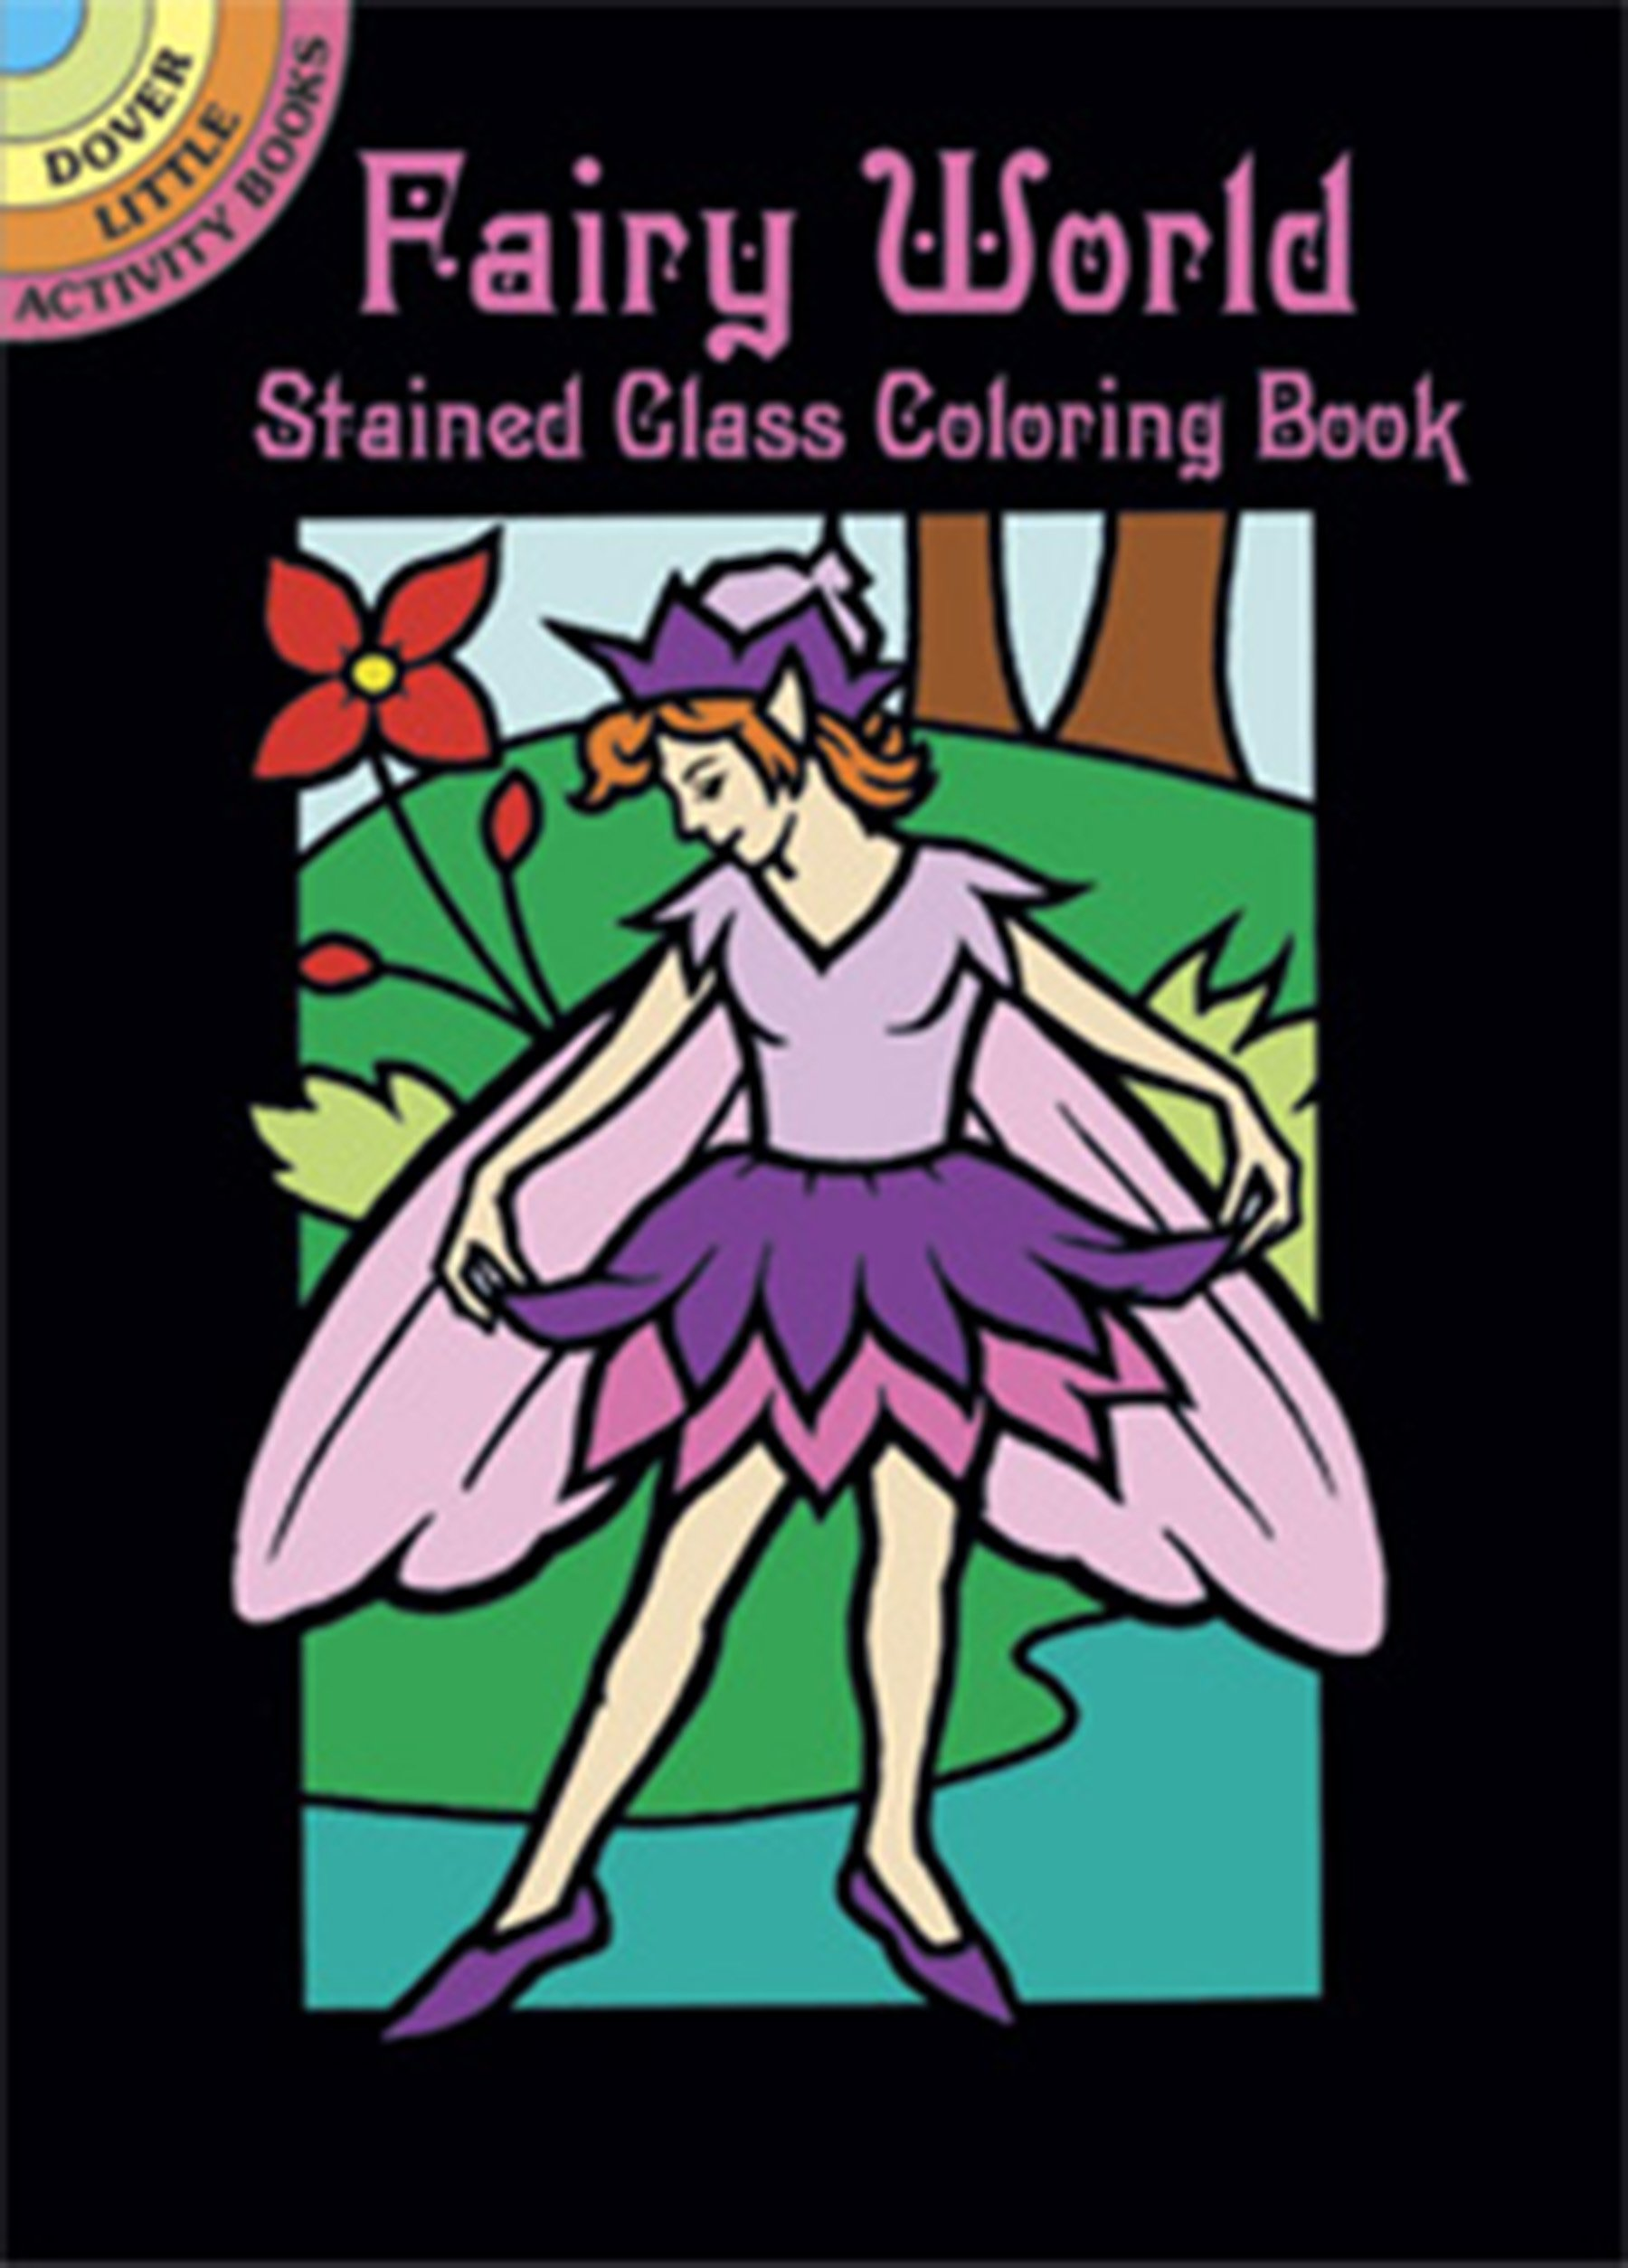 Fairy World Stained Glass Coloring Book (Dover Stained Glass Coloring Book)